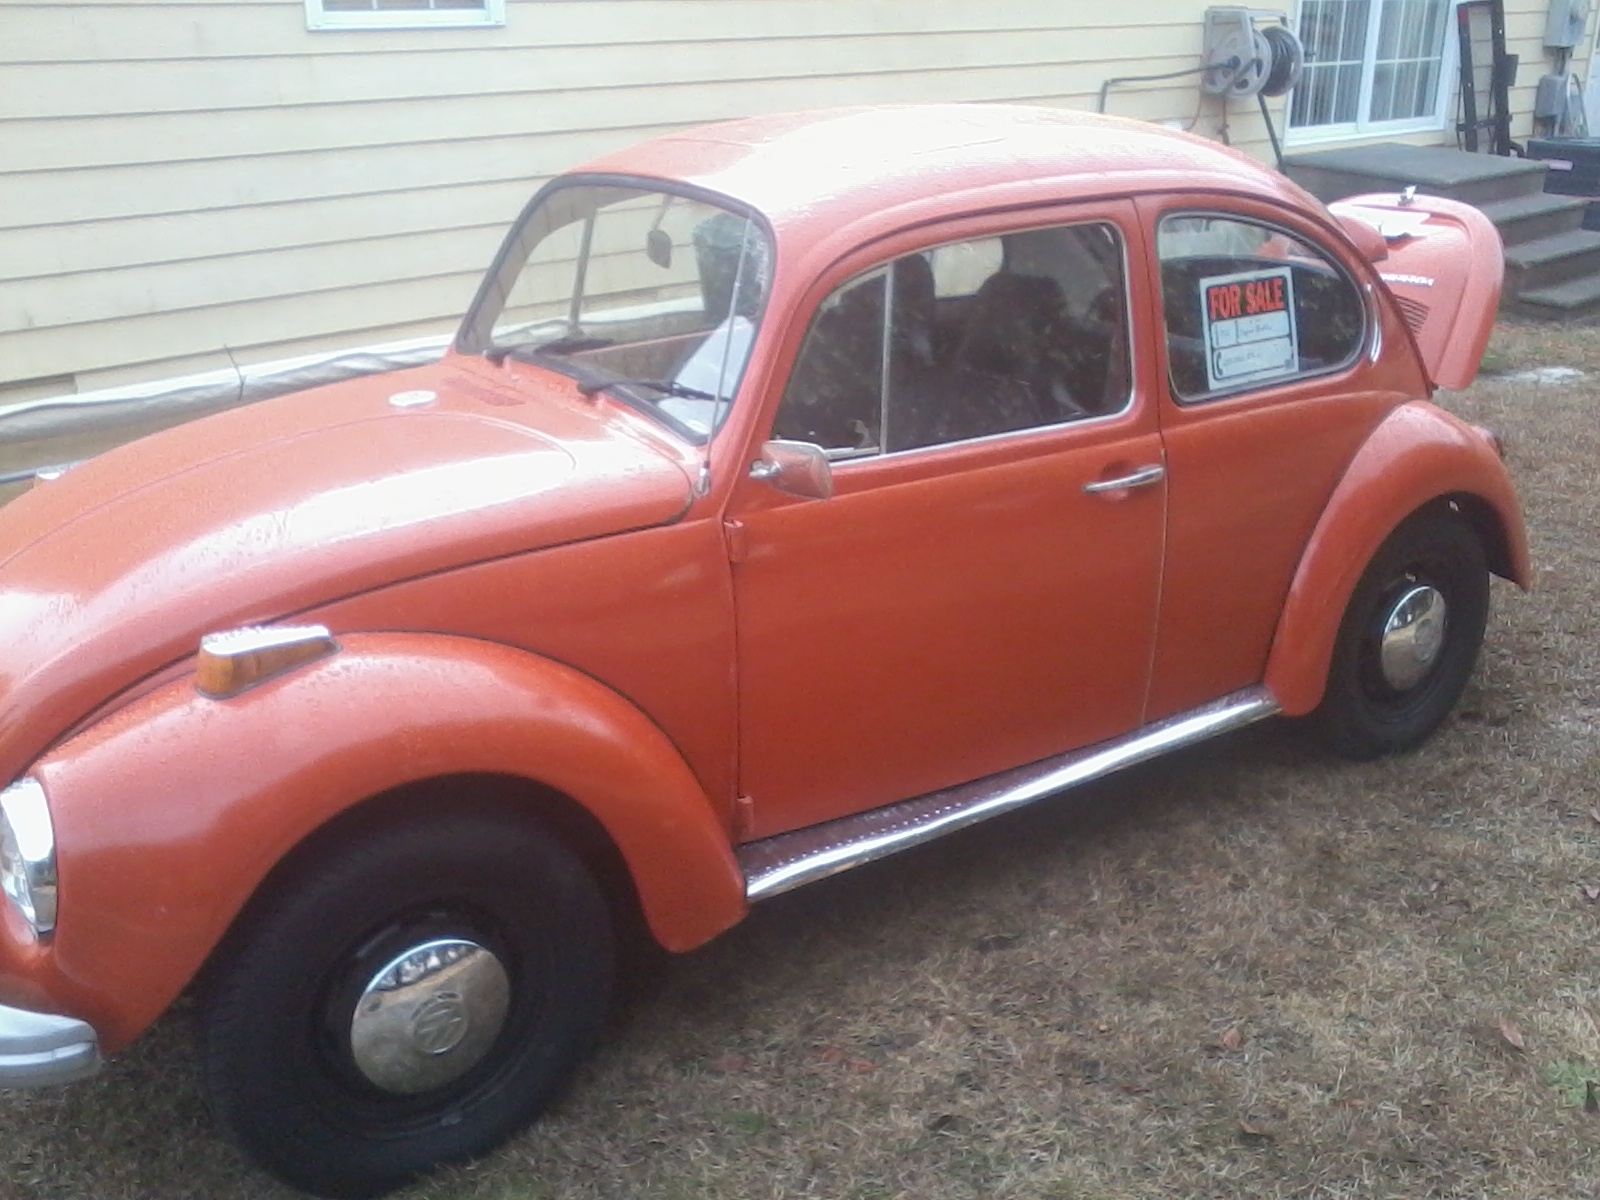 Volkswagen Super Beetle Questions I Need Advice On A 72 Super Beetle For Sale Cargurus